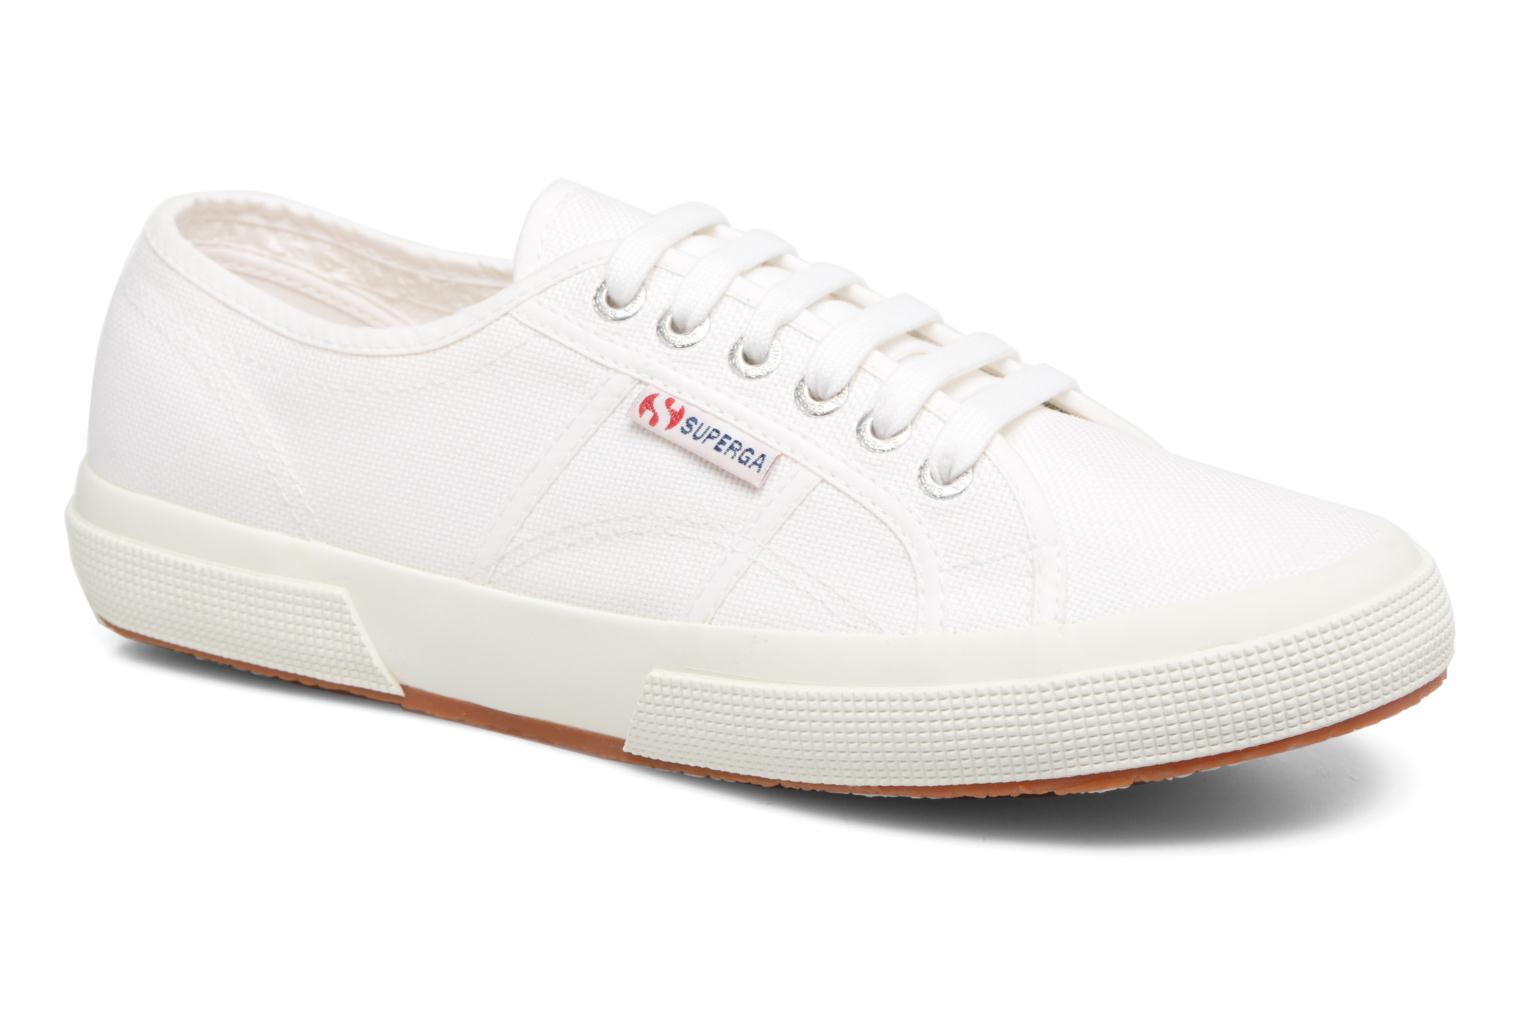 2750 Cotu M by Superga